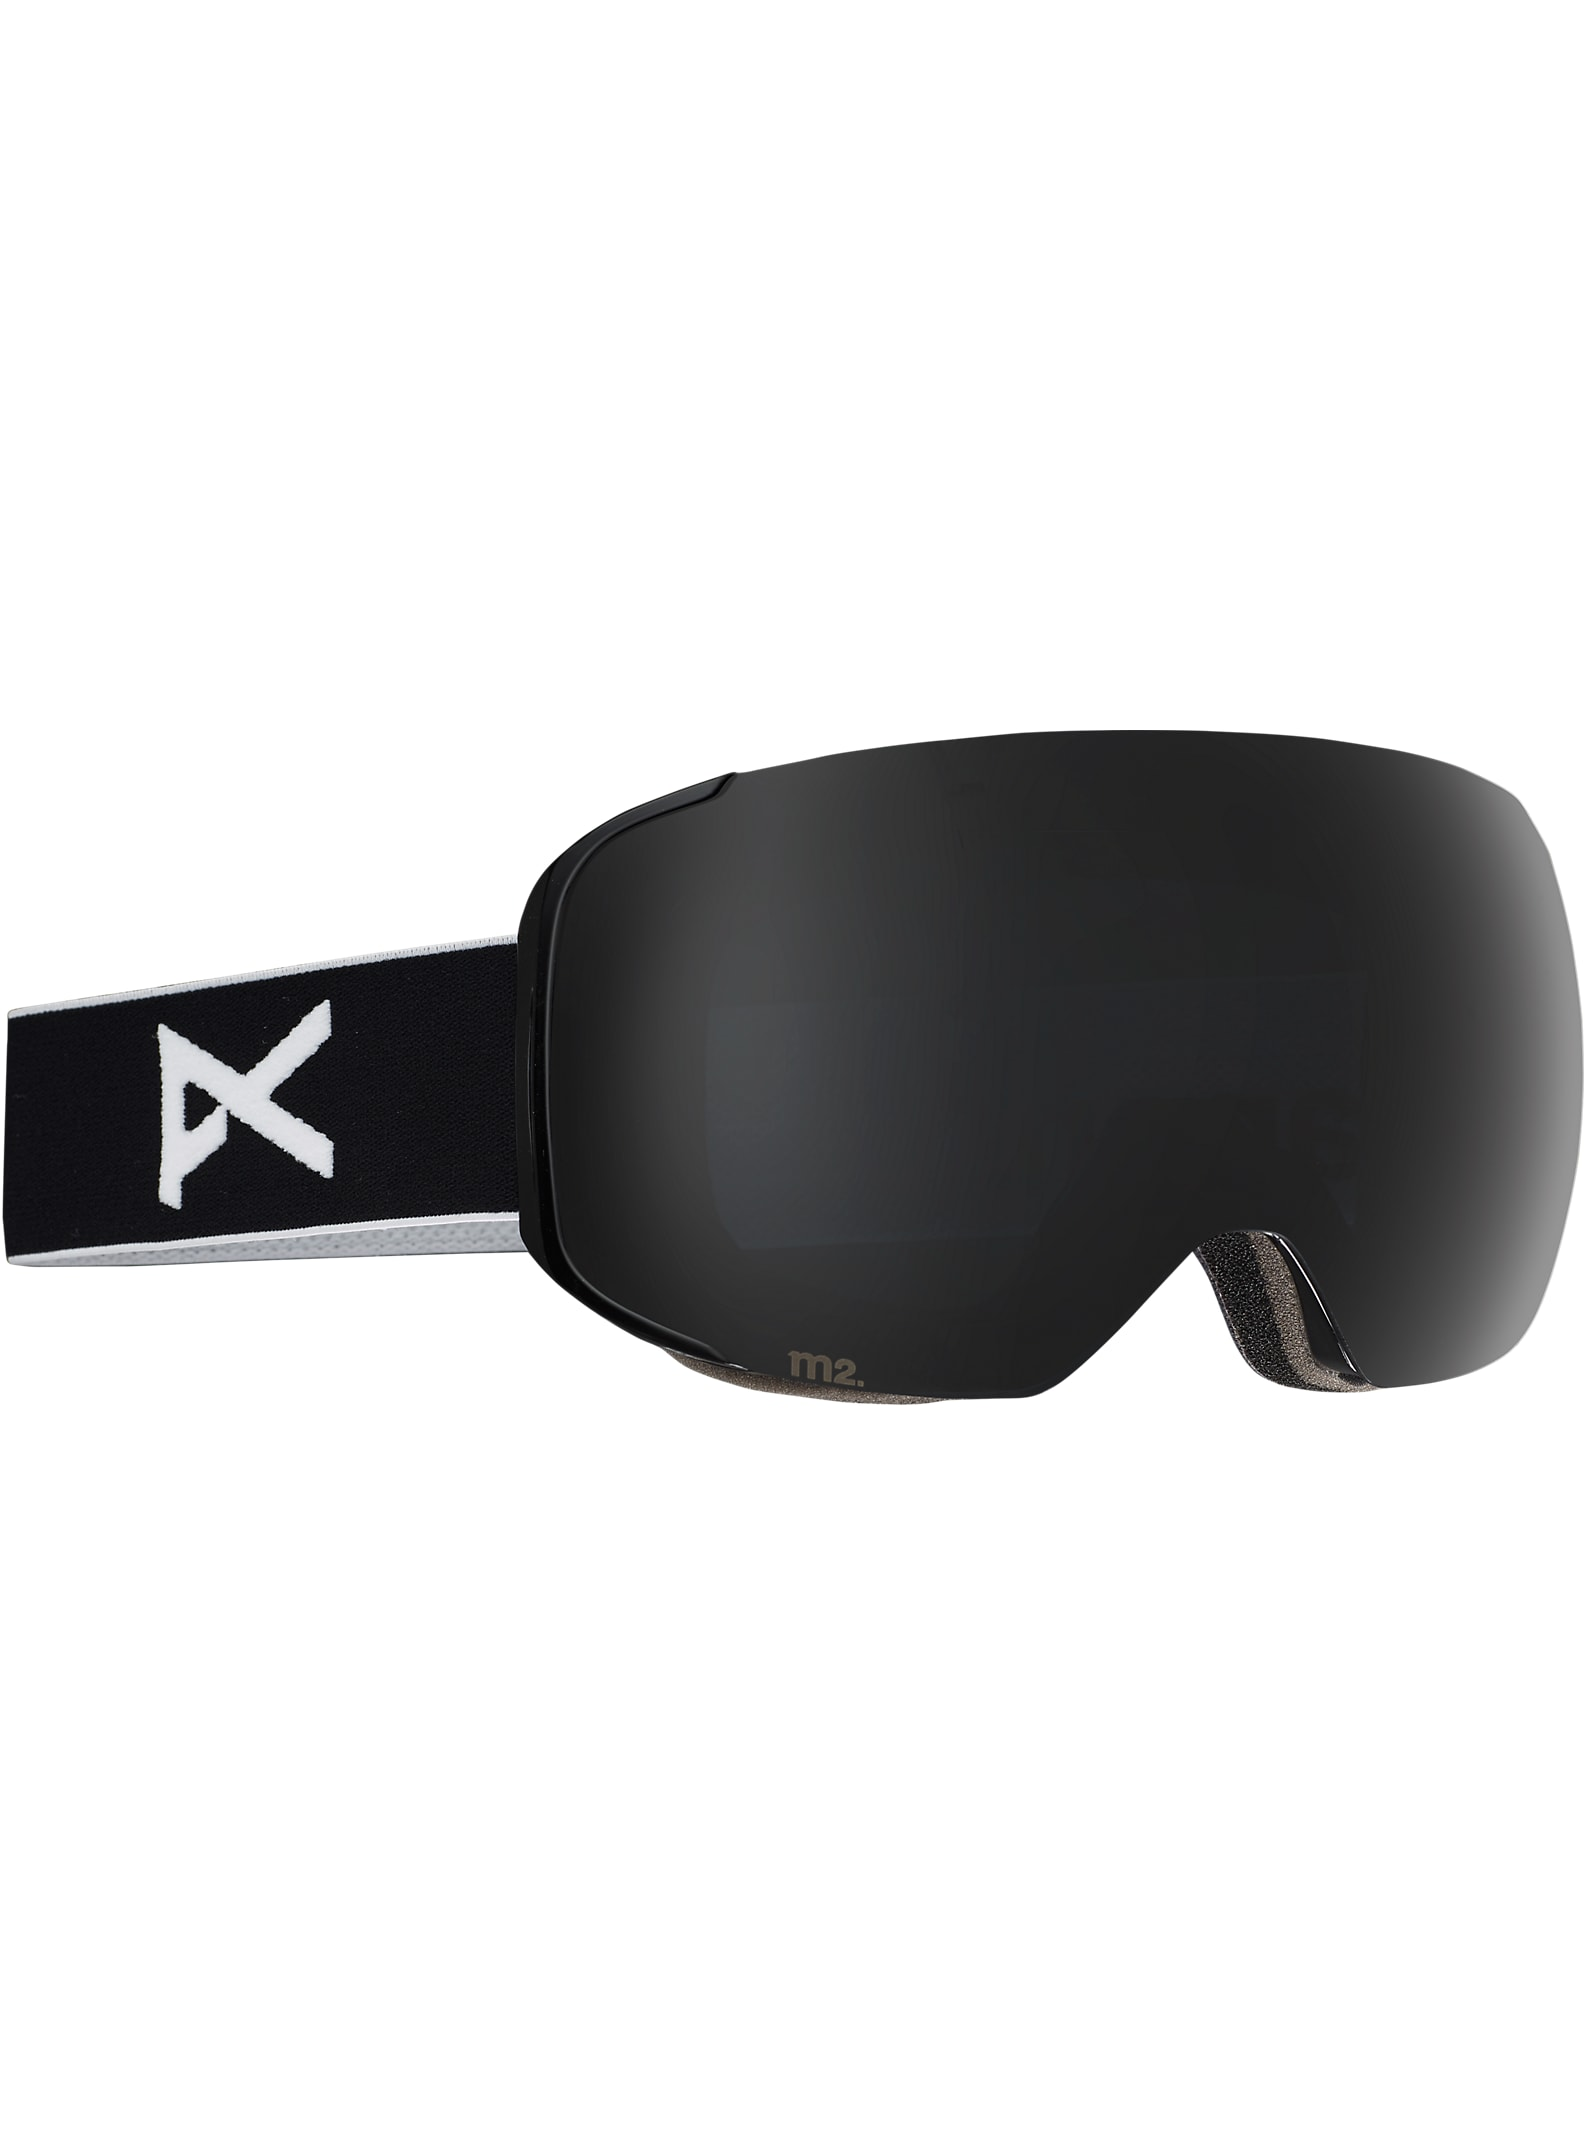 anon. M2 Goggle shown in Frame: Black, Lens: Polar Smoke